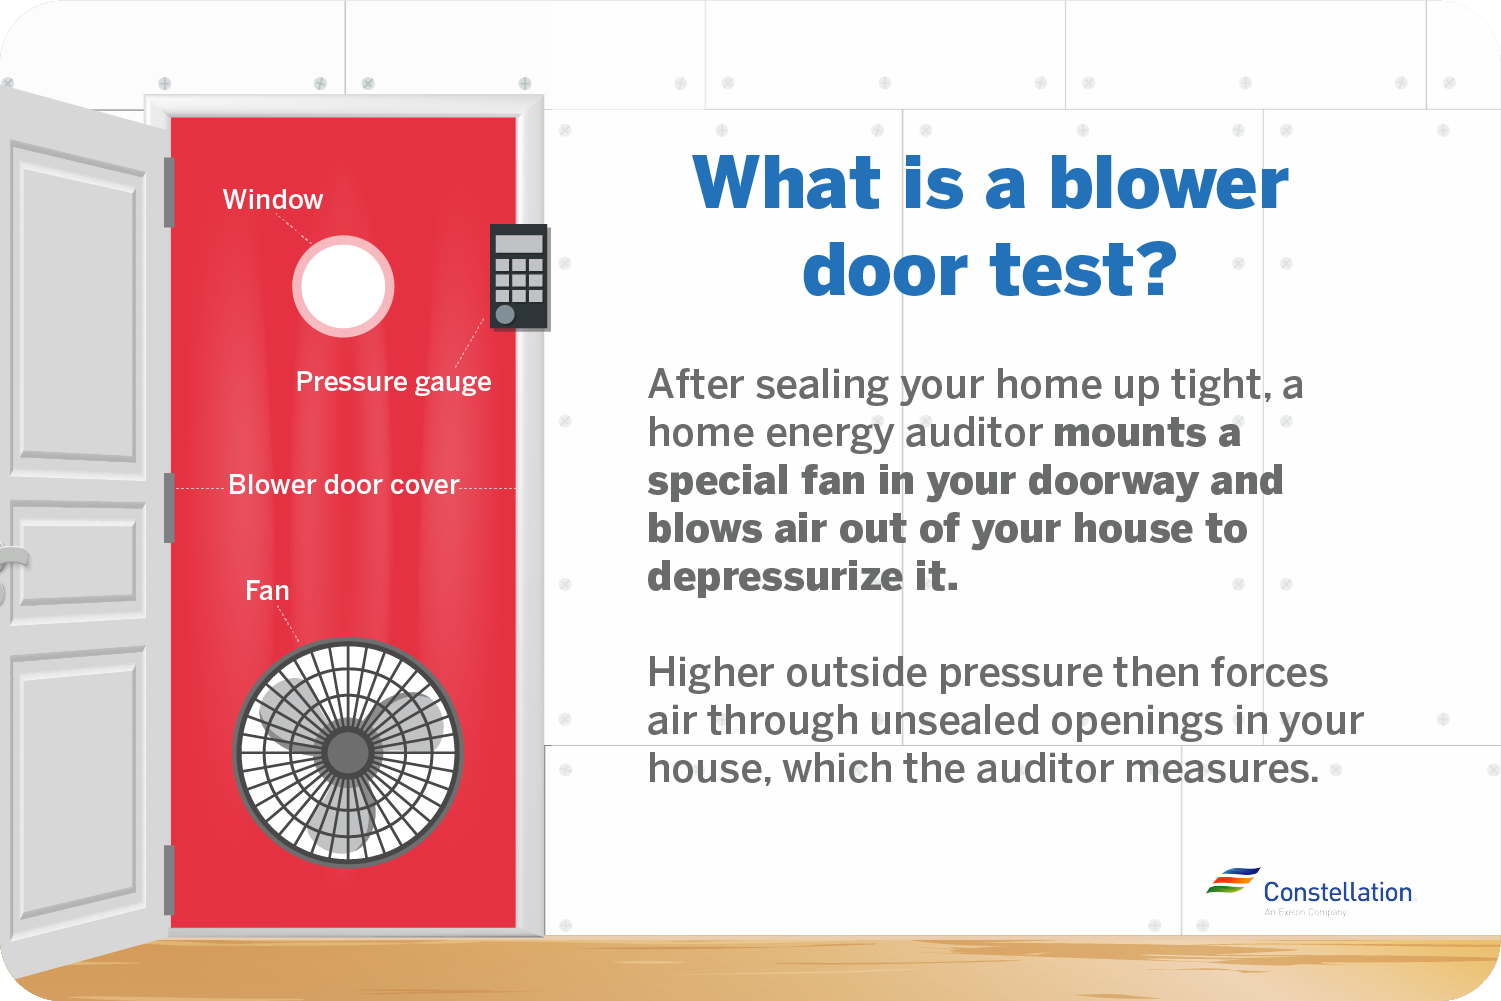 What is a blower door test